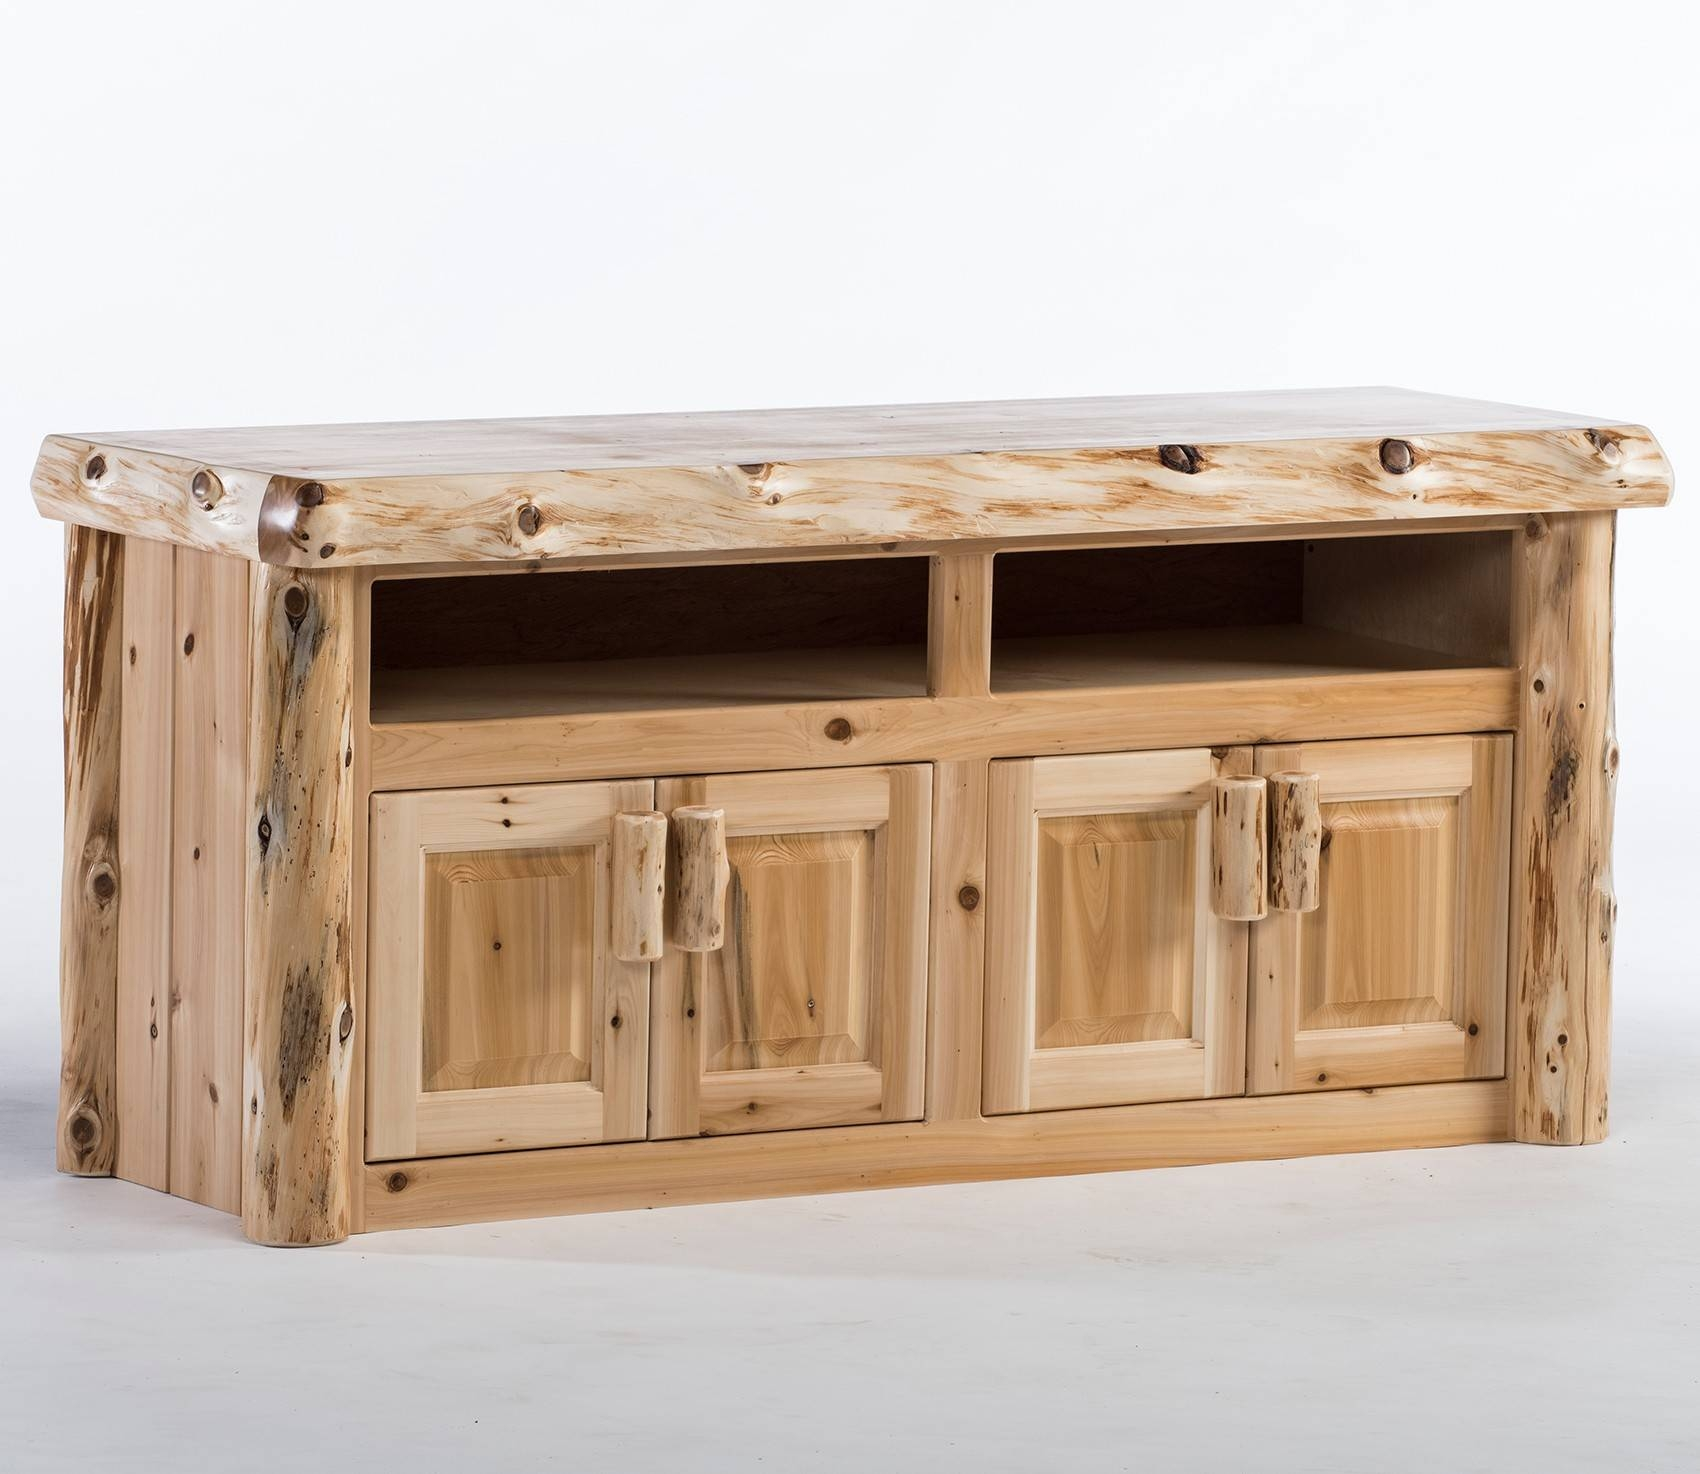 Reclaimed Wood Tv Stands & Rustic Tv Stands: Log Tv Stand & Rustic Intended For Rustic Tv Stands (View 15 of 15)